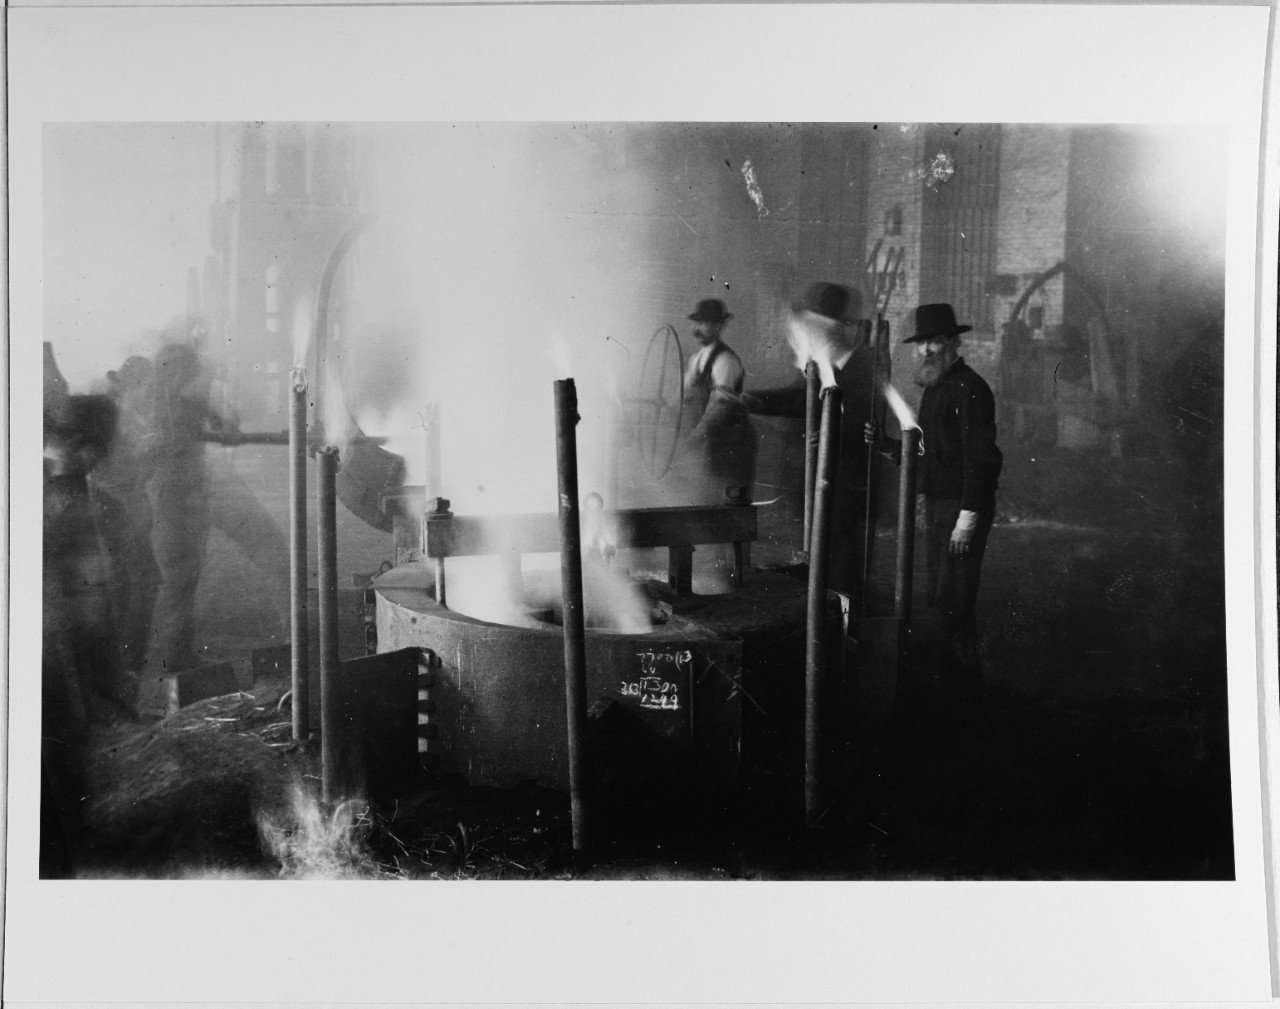 Mare Island workers cast a steel propeller, 1918. As one of the largest Navy shipyards on the West Coast, Mare Island needed to be able to fabricate a wide variety of parts to repair ships. NHHC.